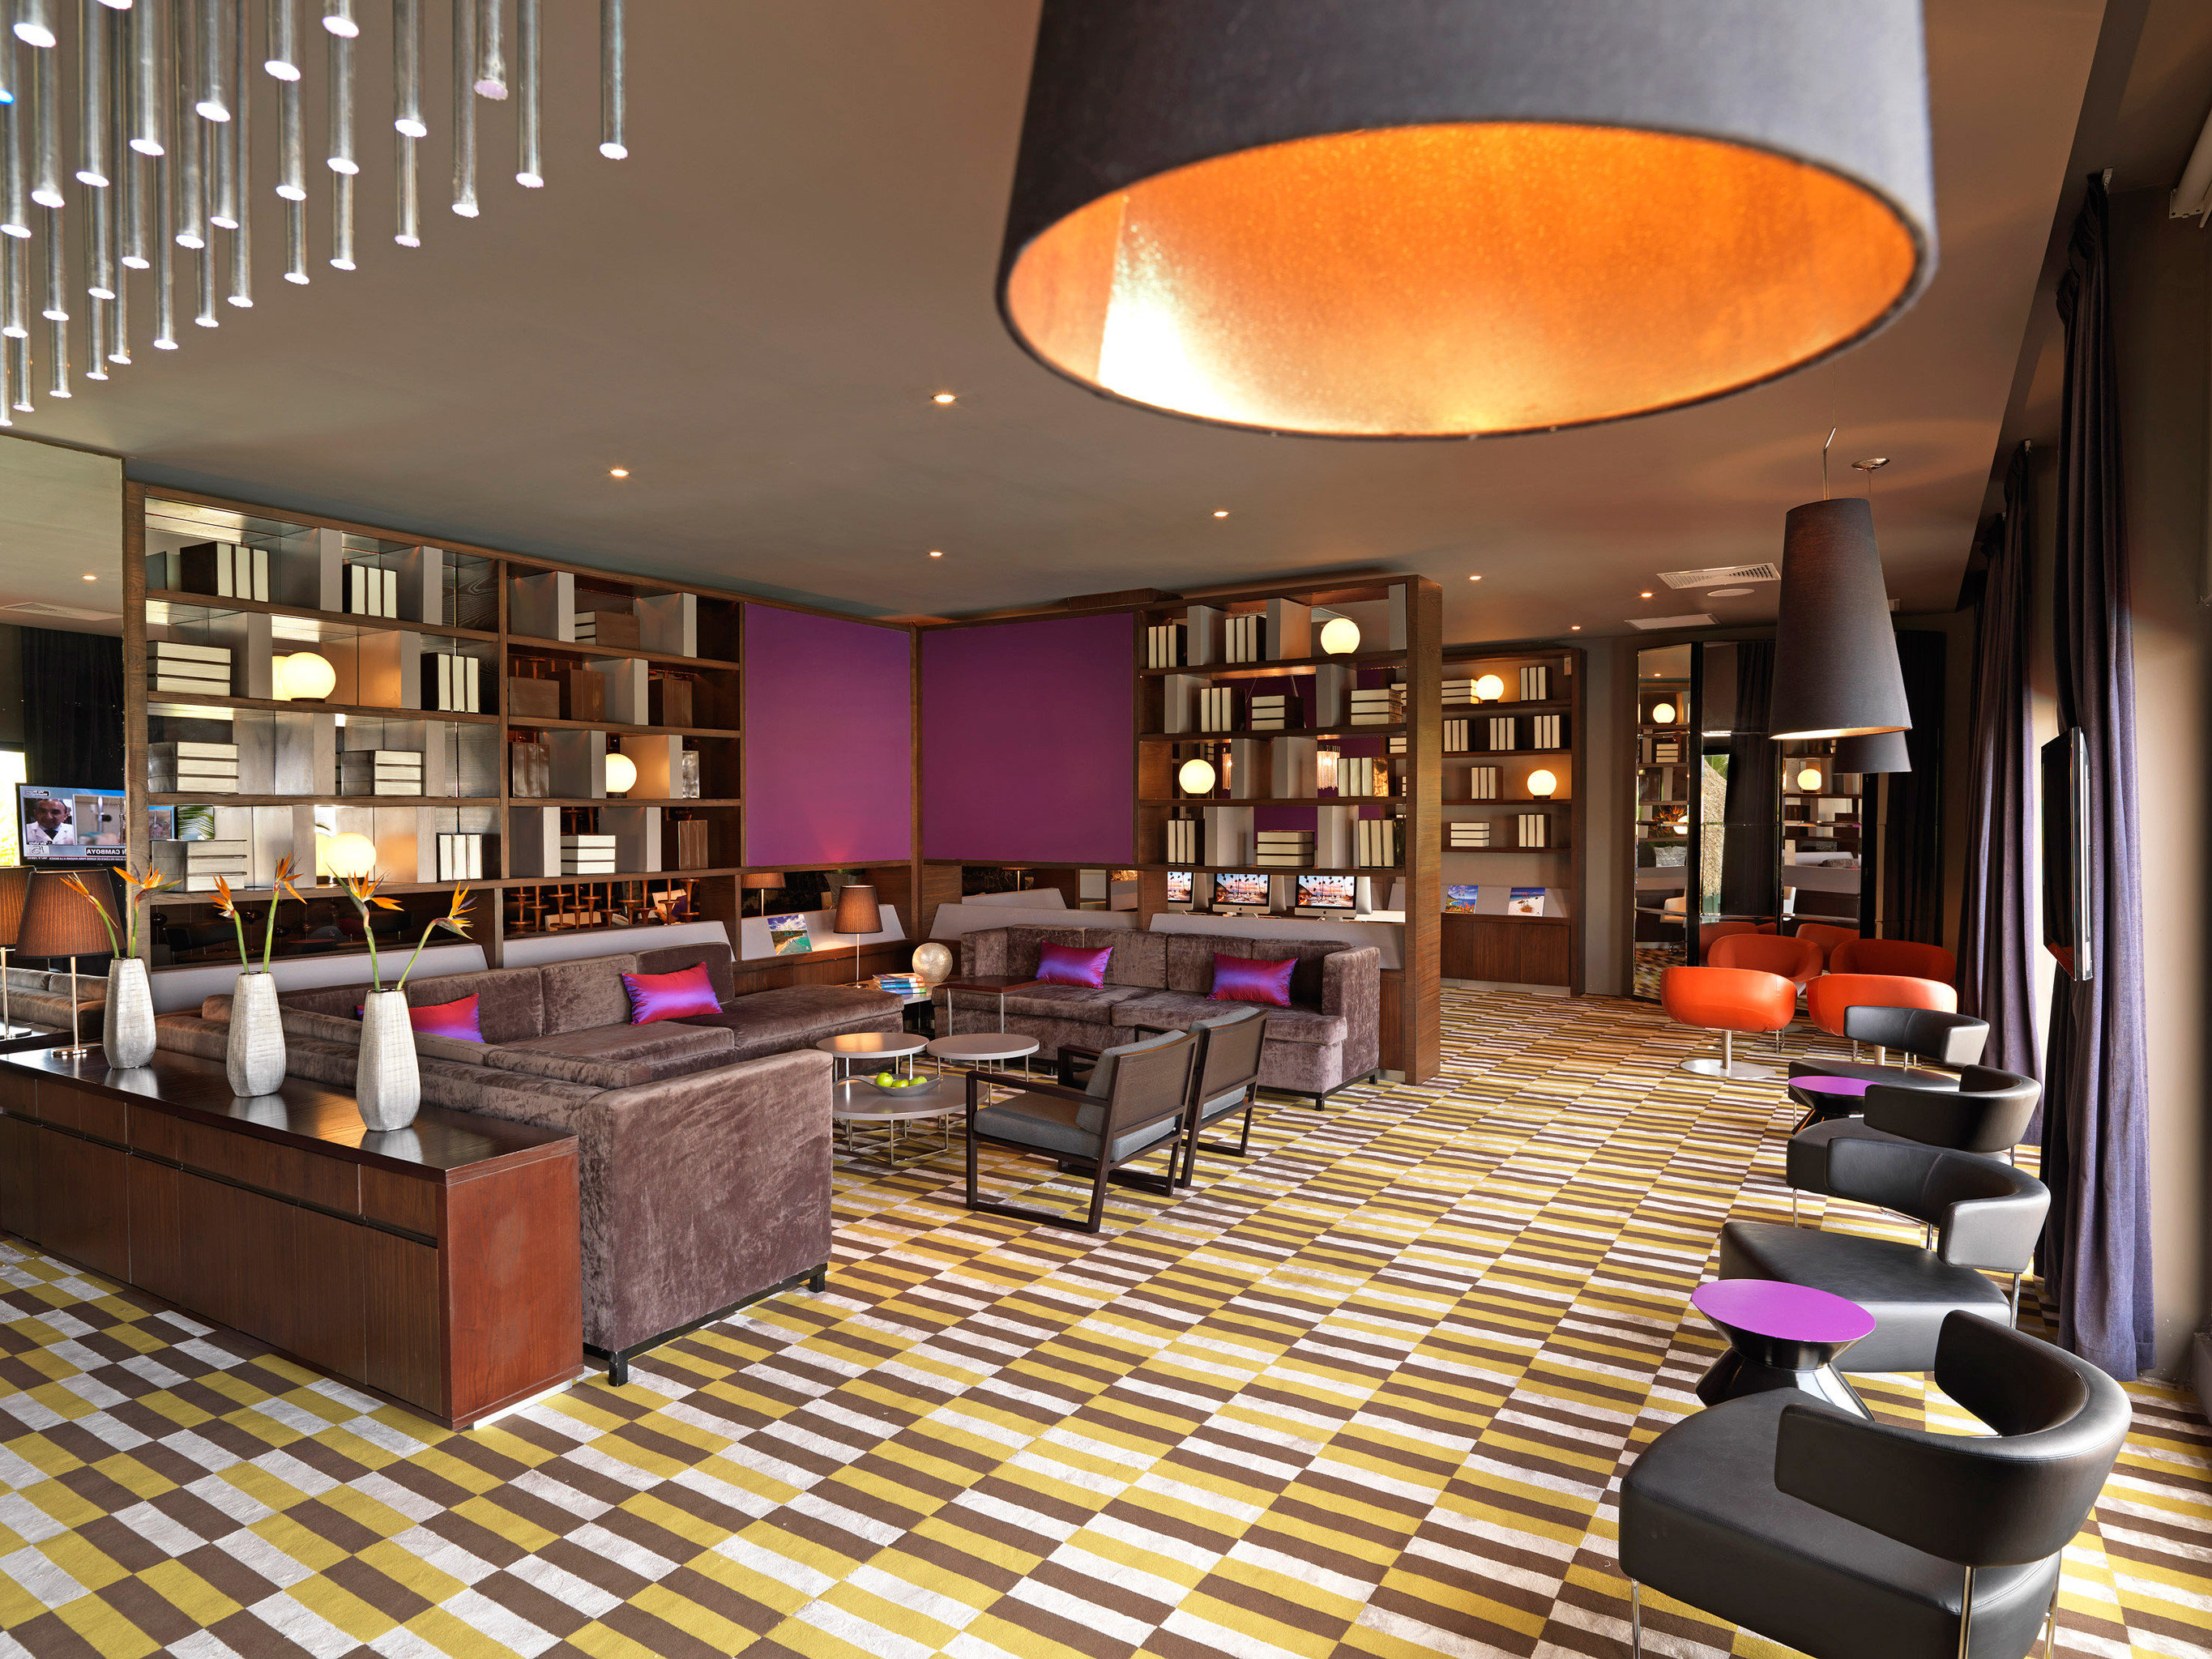 All-inclusive Family Hotels Lounge Luxury Resort Romantic indoor floor ceiling Lobby room interior design restaurant function hall Bar café recreation room furniture Design conference hall convention center area dining room